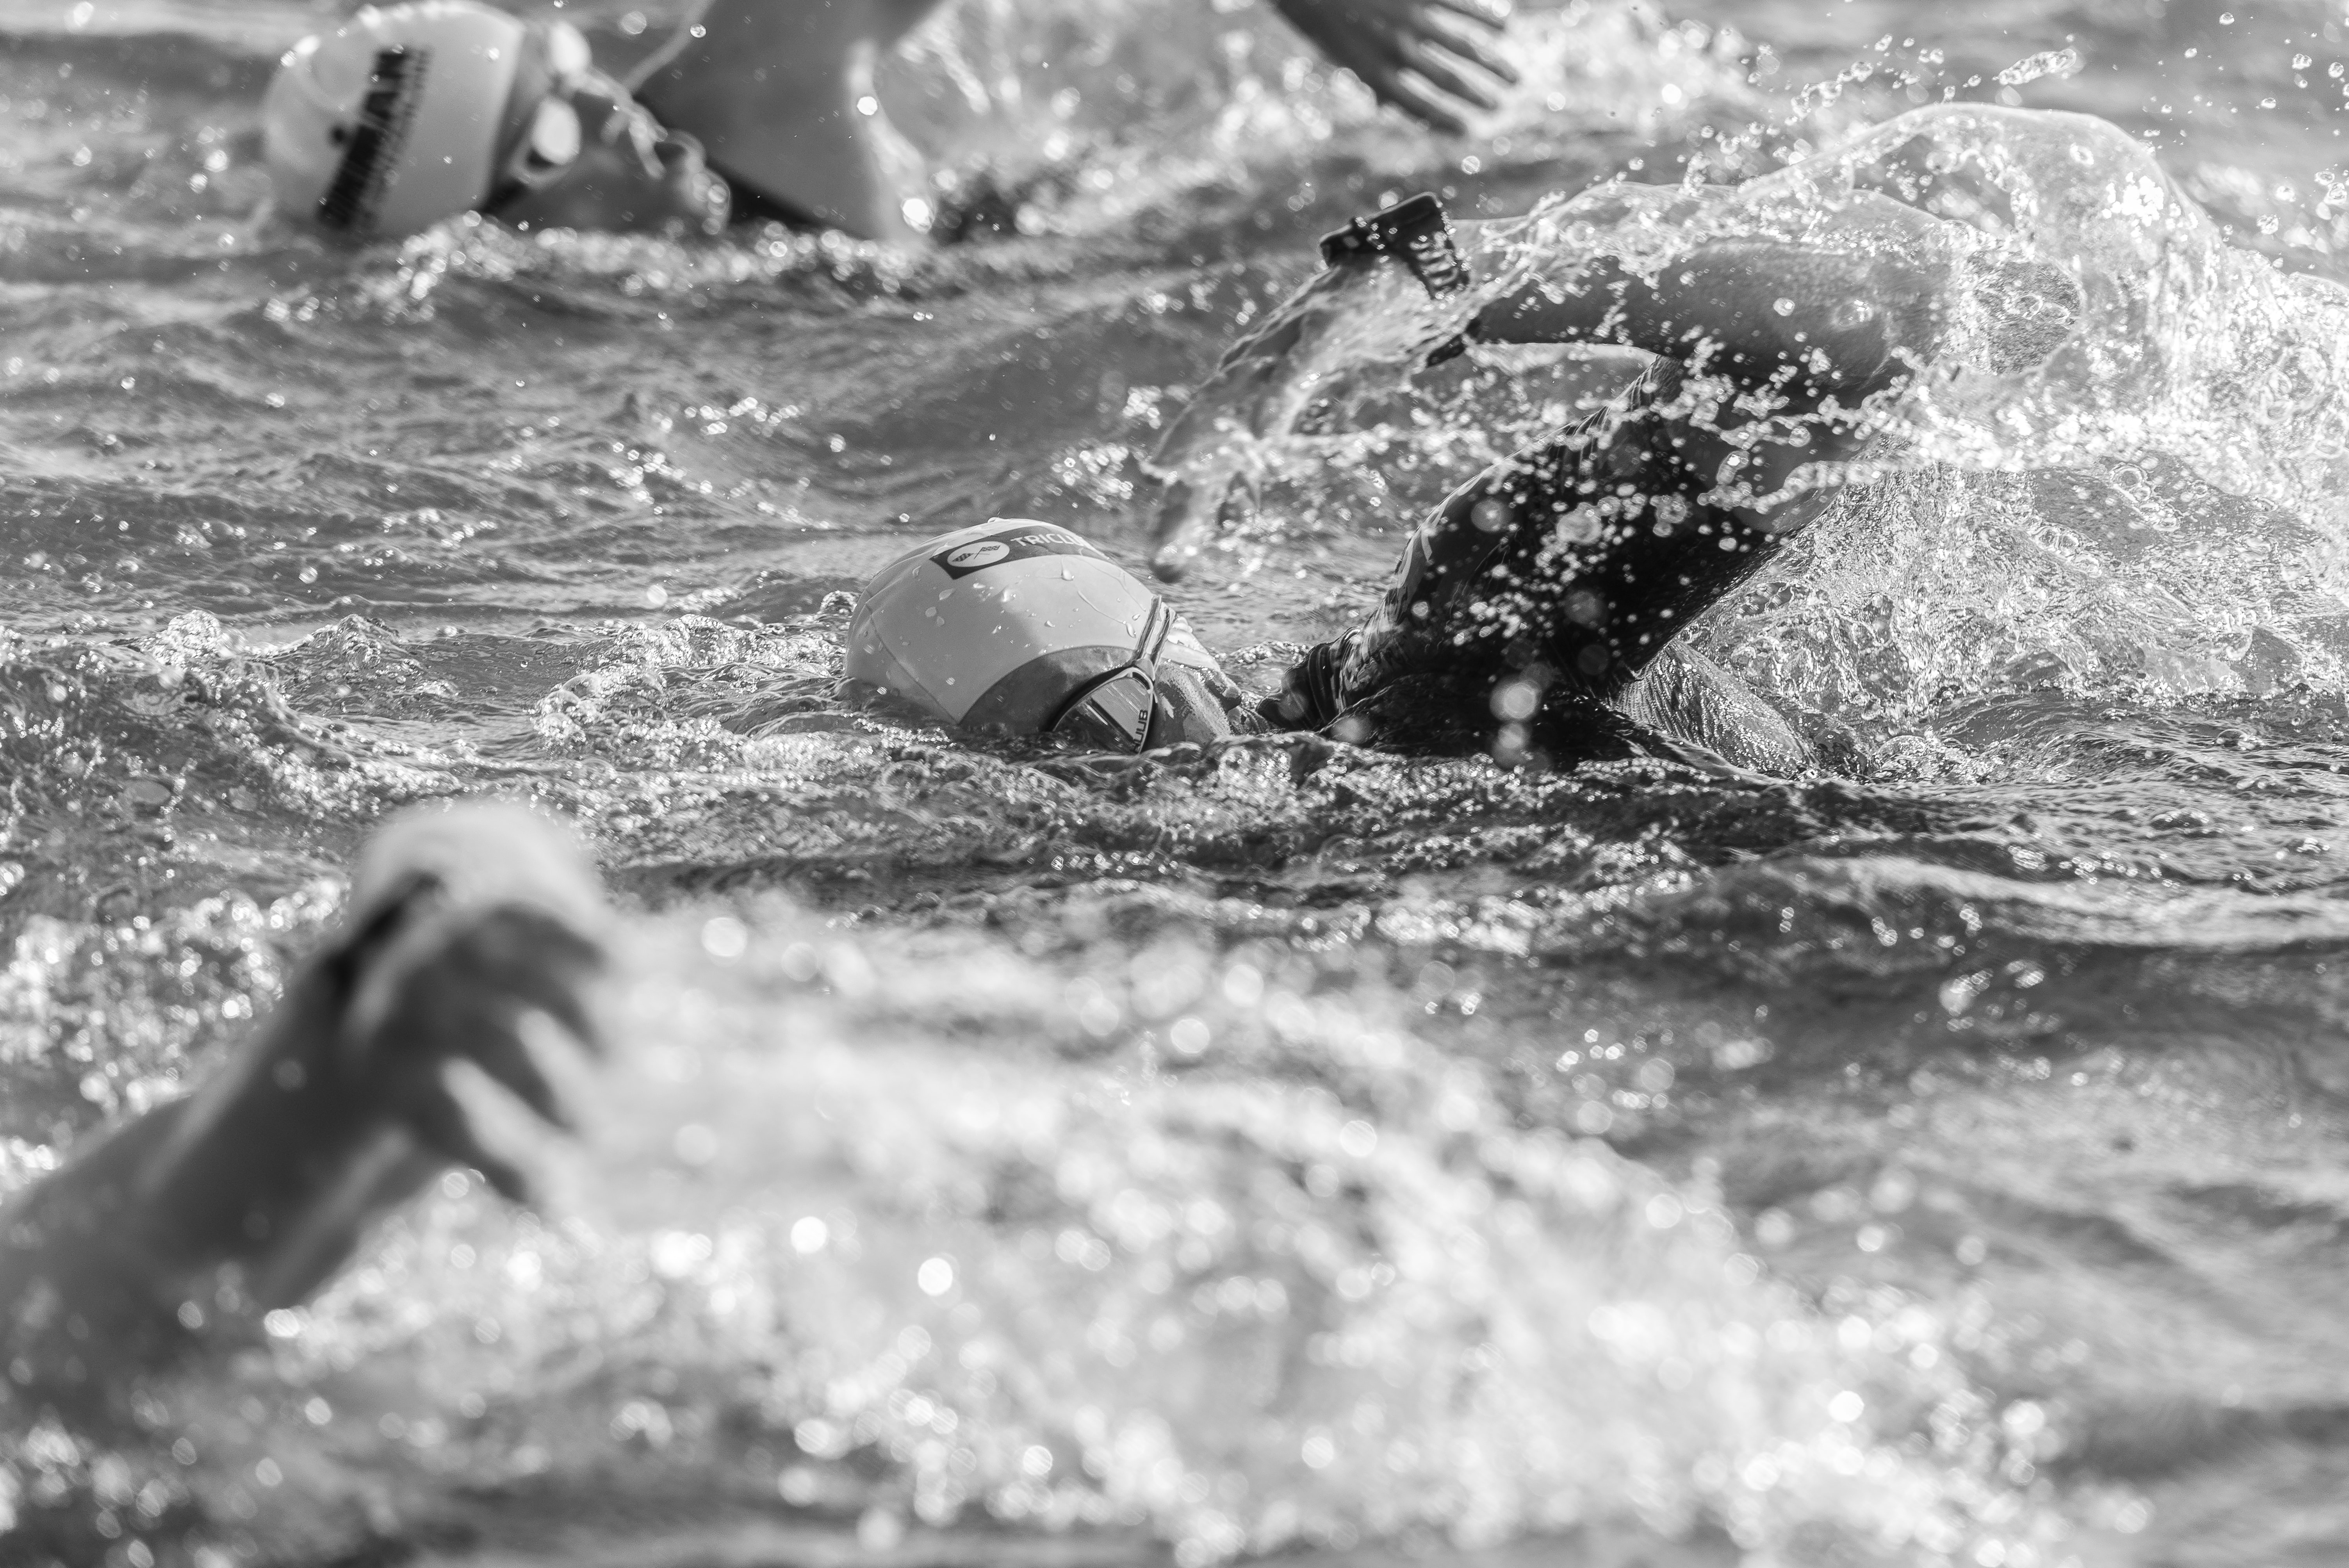 grayscale pjoto of swimmers